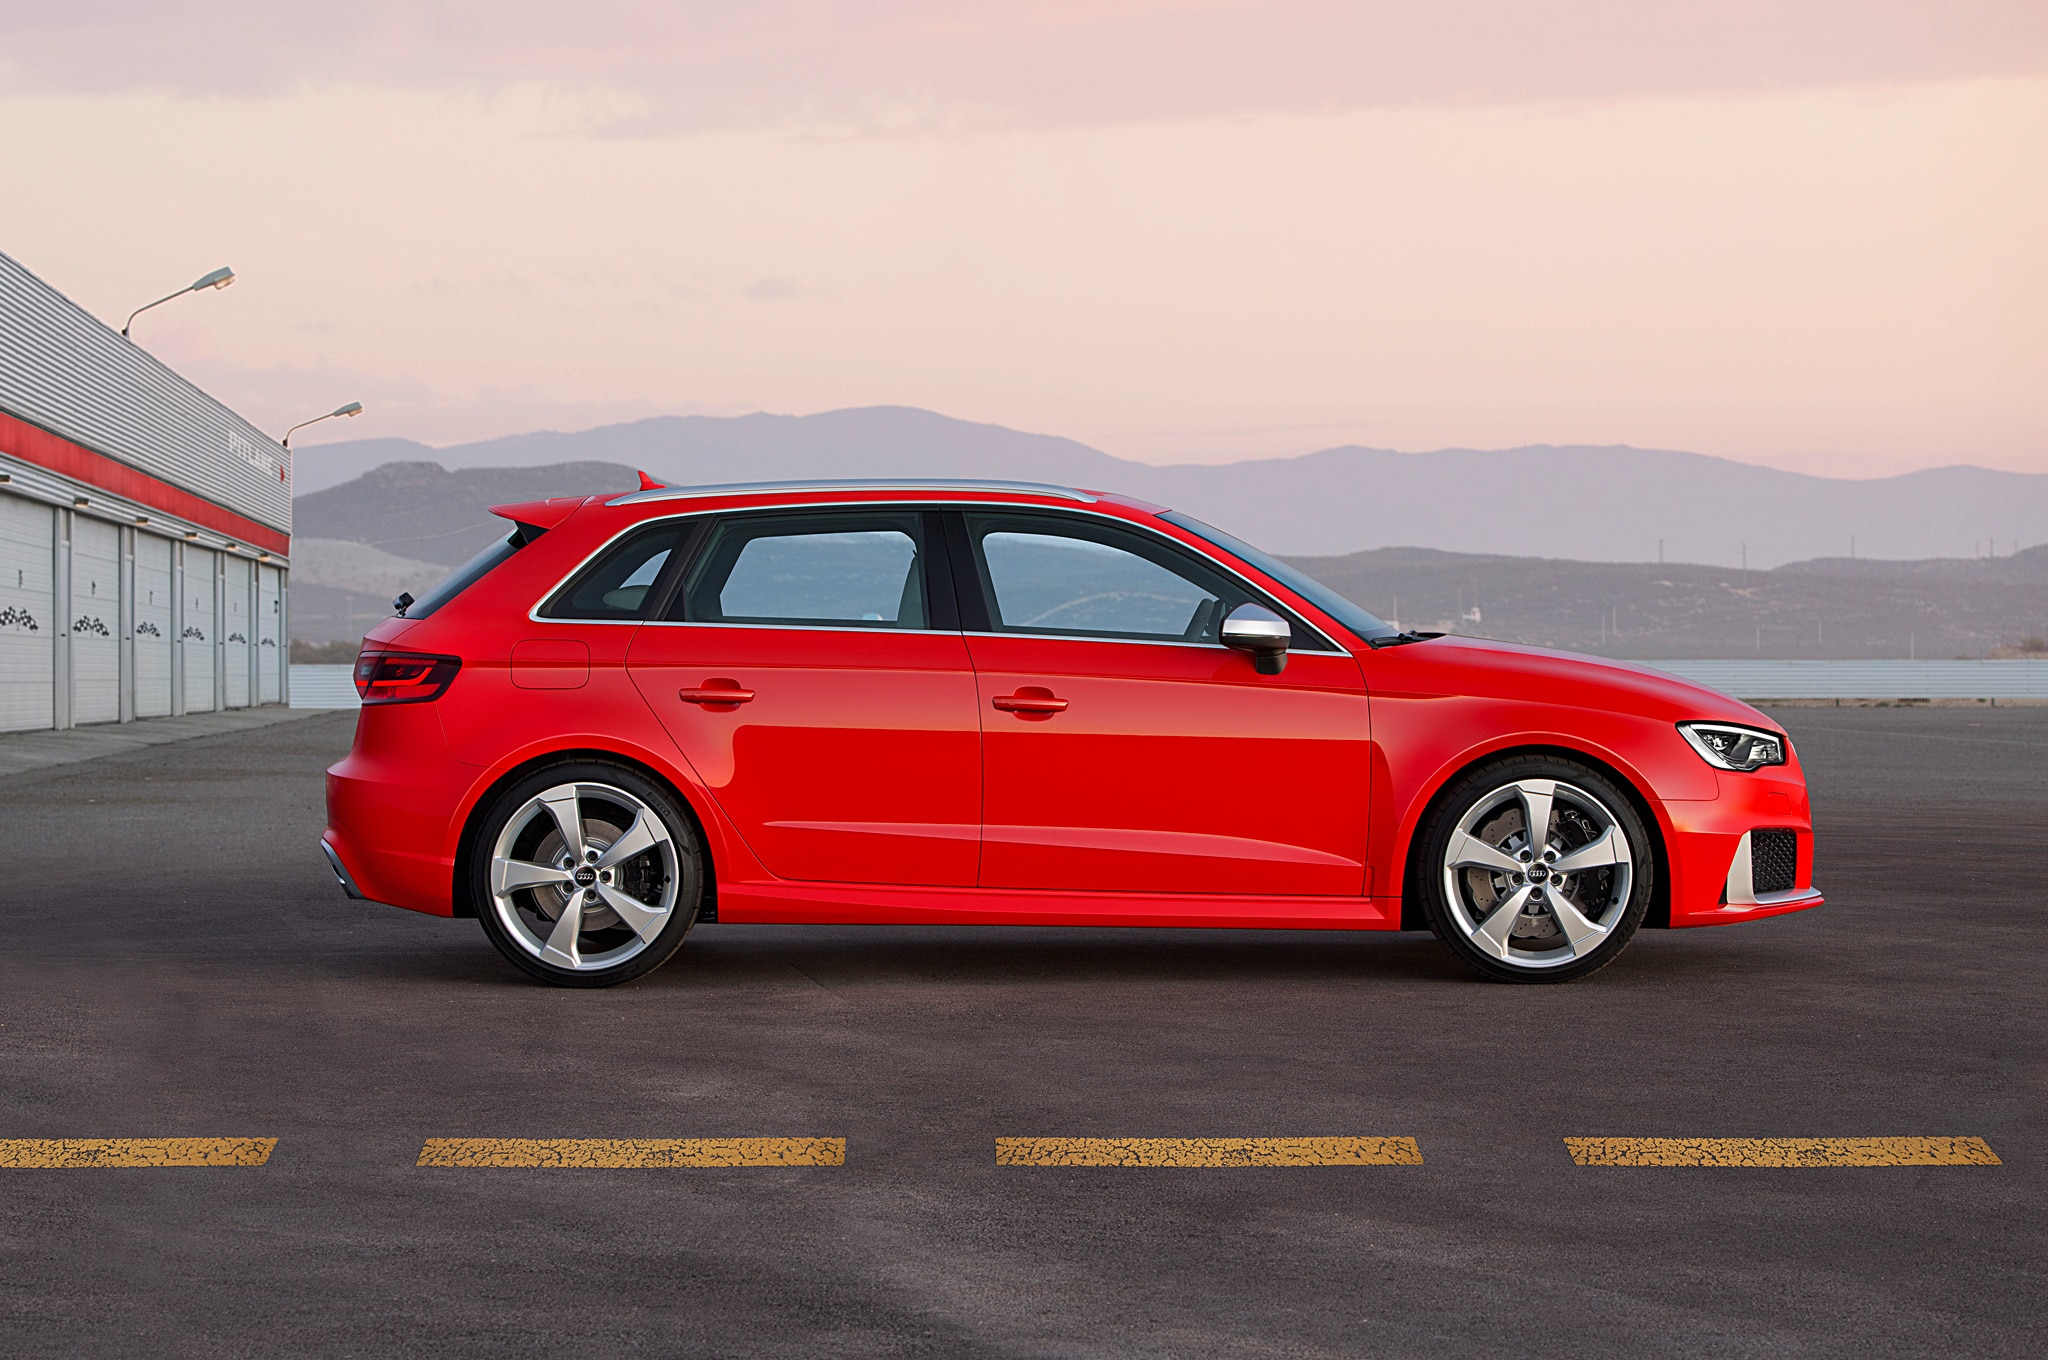 lapping le mans in an audi rs 3 sportback. Black Bedroom Furniture Sets. Home Design Ideas